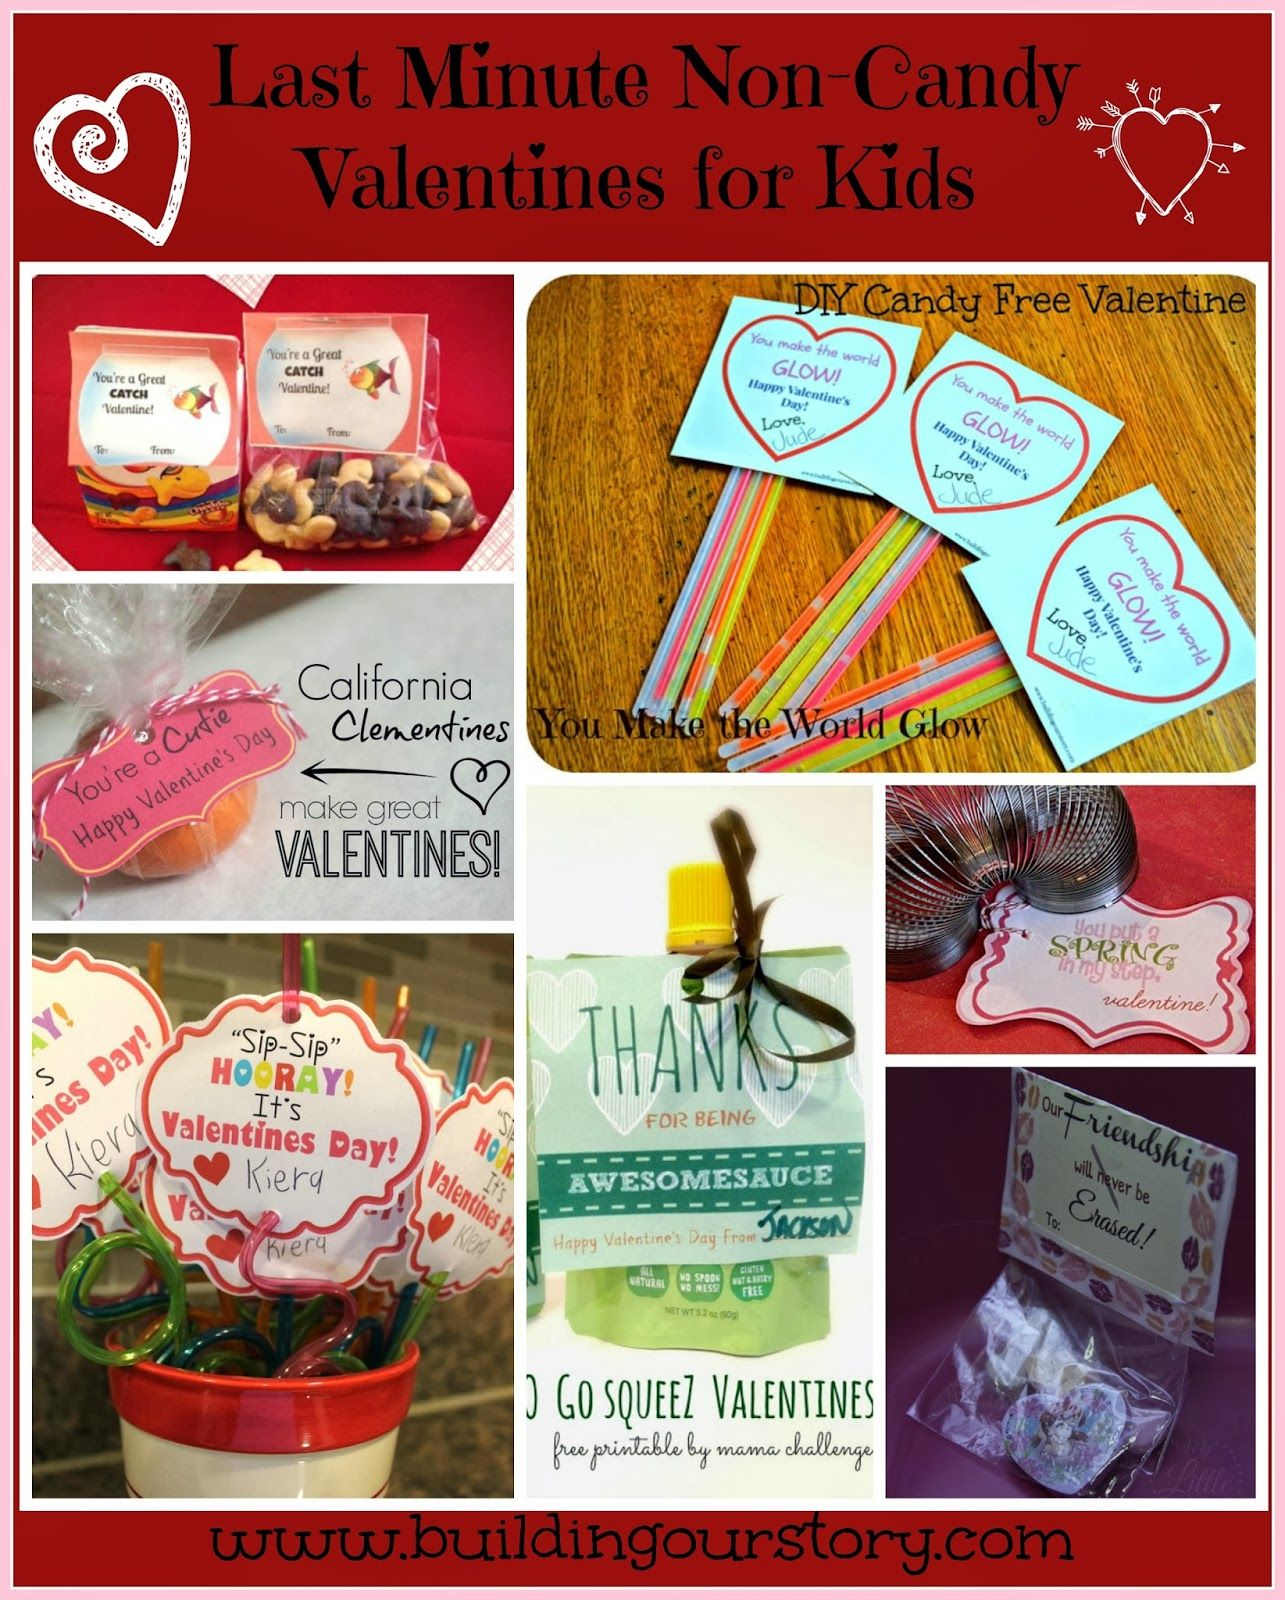 Easy Last Minute Non Candy Valentine Ideas For Kids Valentine S Day Crafts For Kids Valentine Candy Valentine Day Crafts